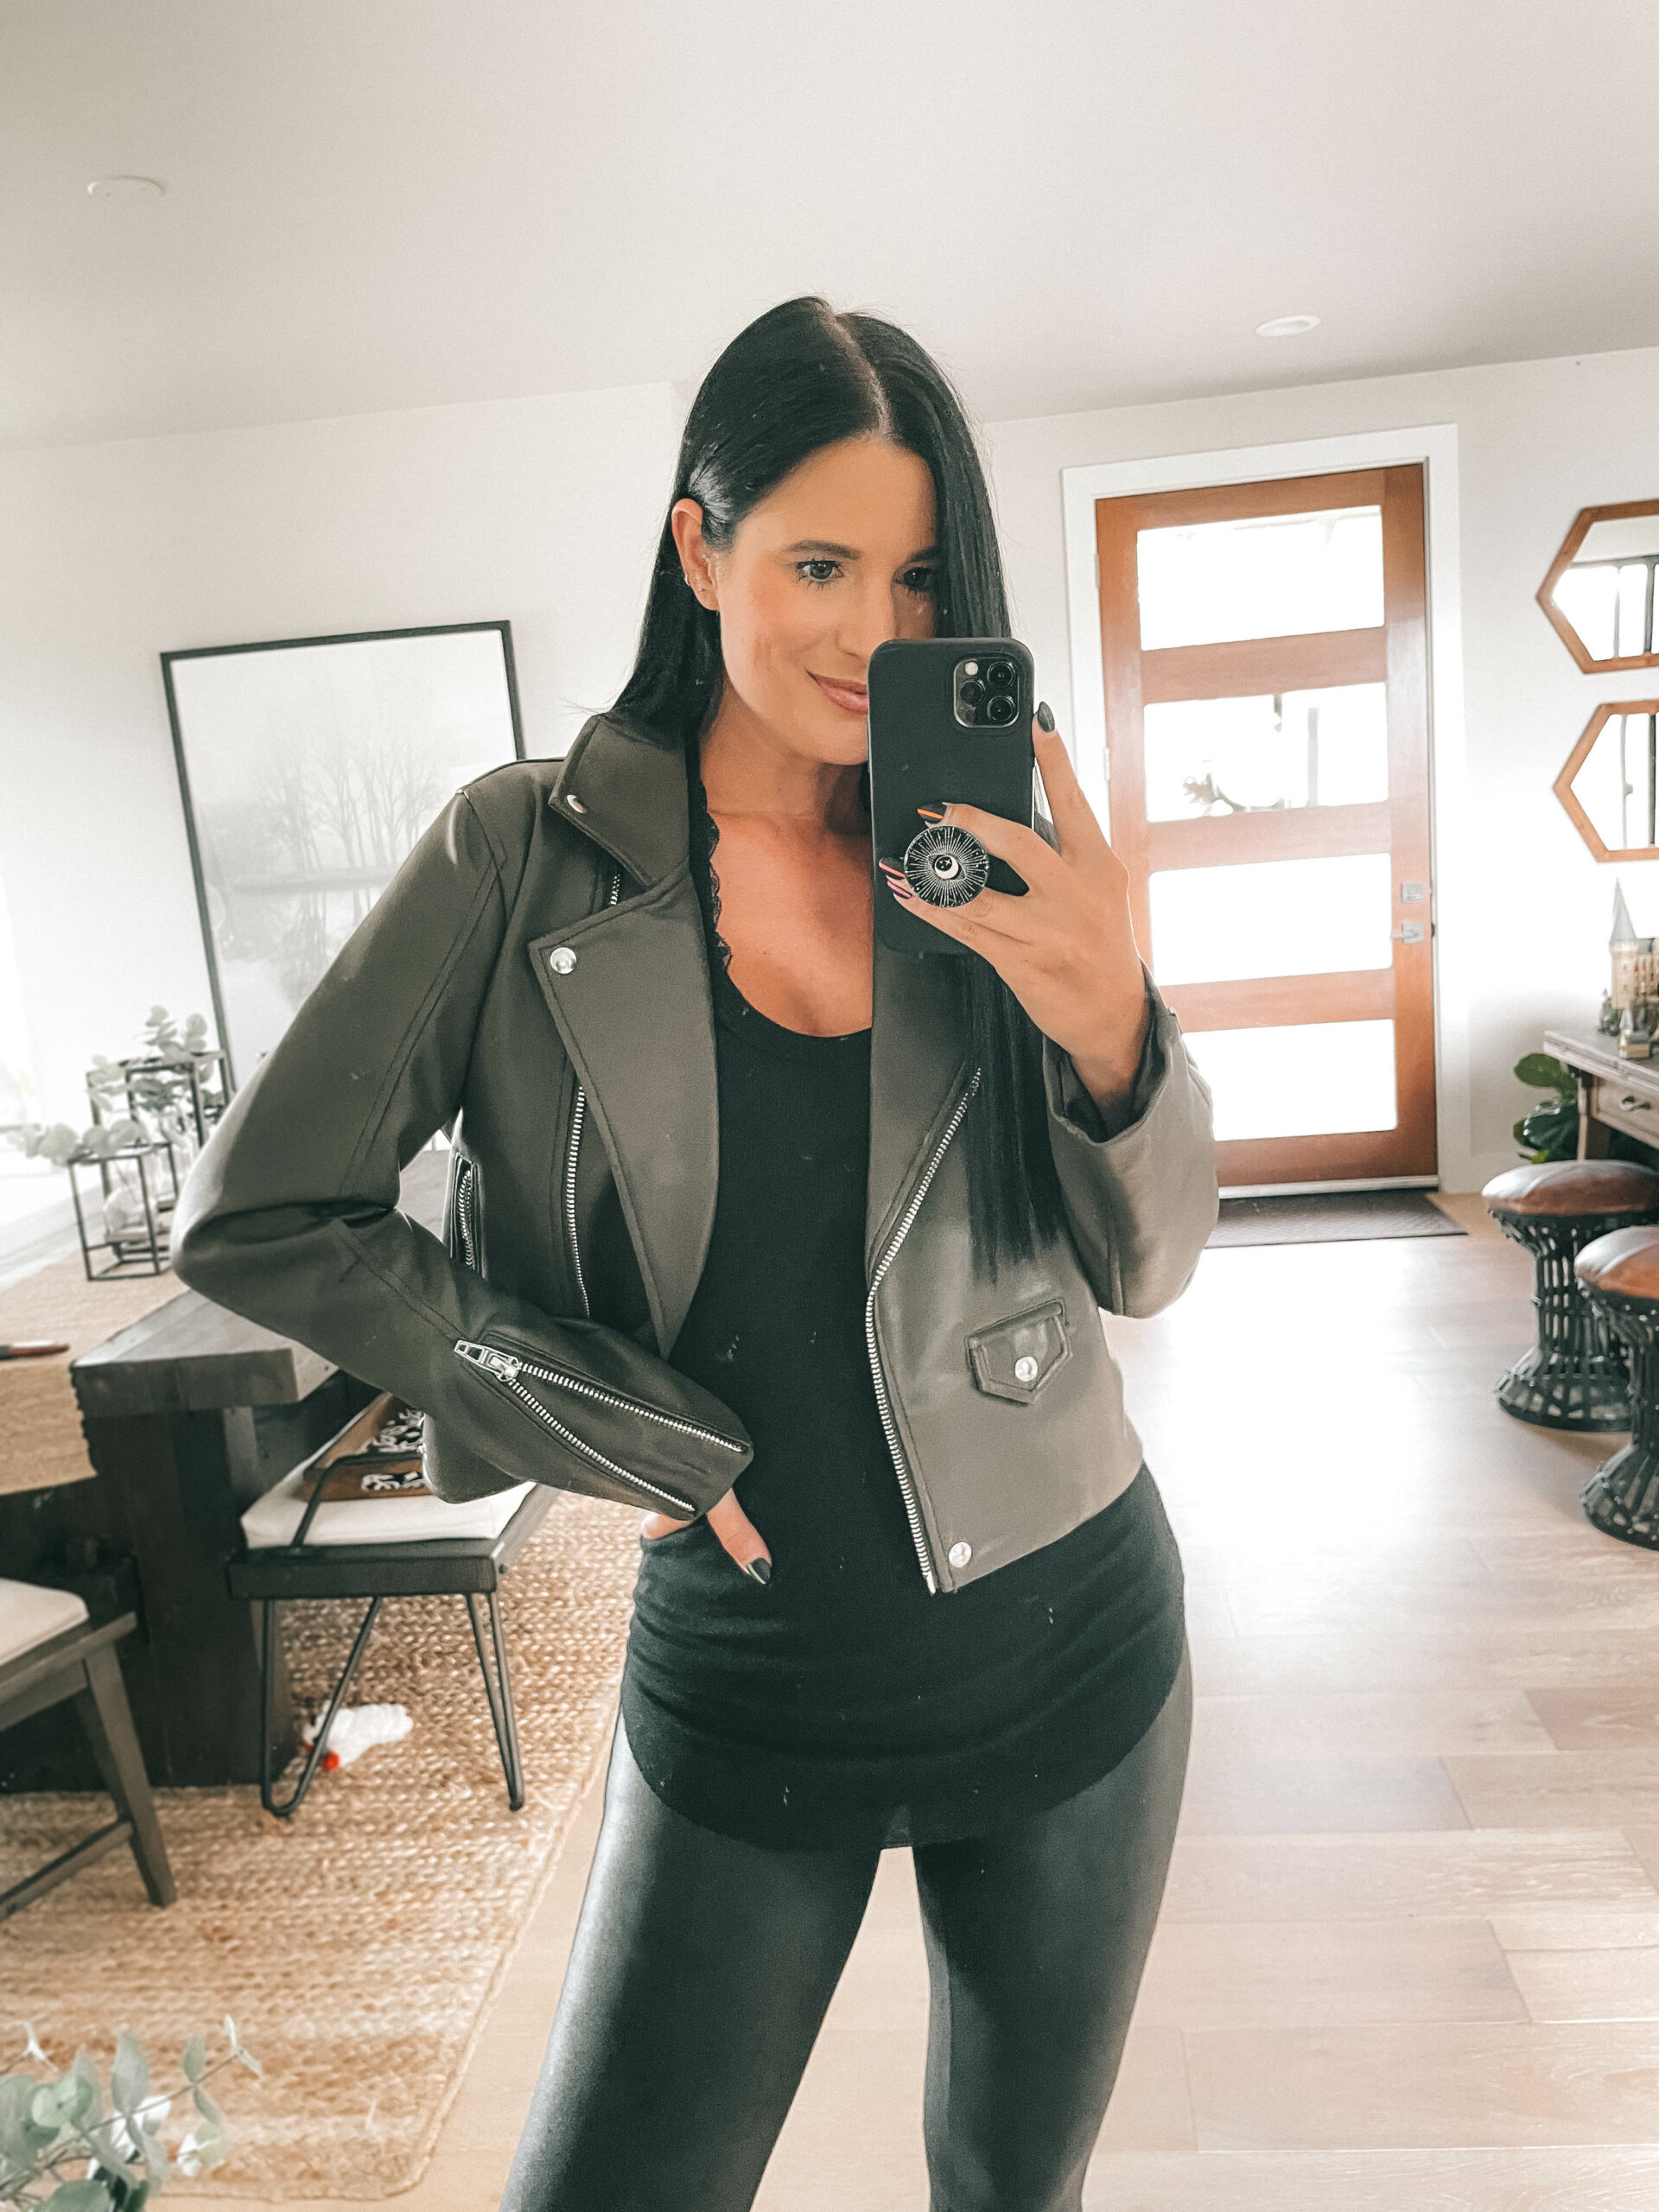 Nordstrom Anniversary Sale by popular Austin fashion blog, Dressed to Kill: image of a woman wearing a grey faux leather jacket, black top, and black faux leather leggings.